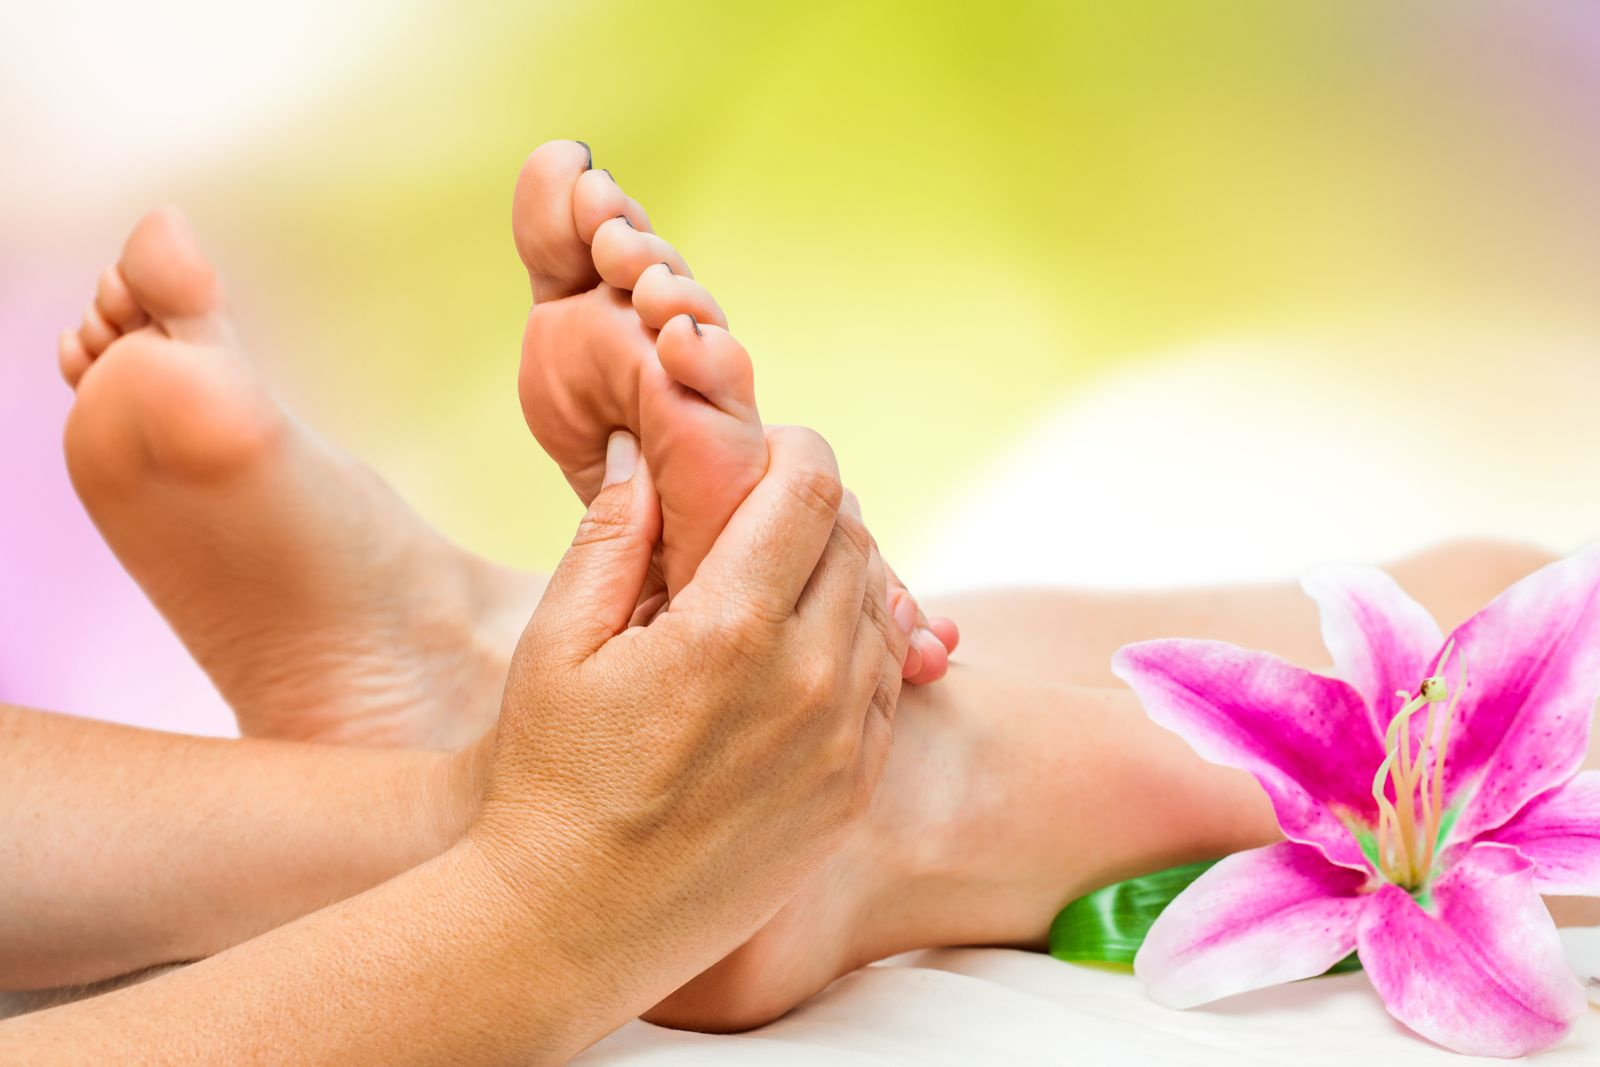 Creams can help you hydrate and pamper your feet, even if you apply them yourself